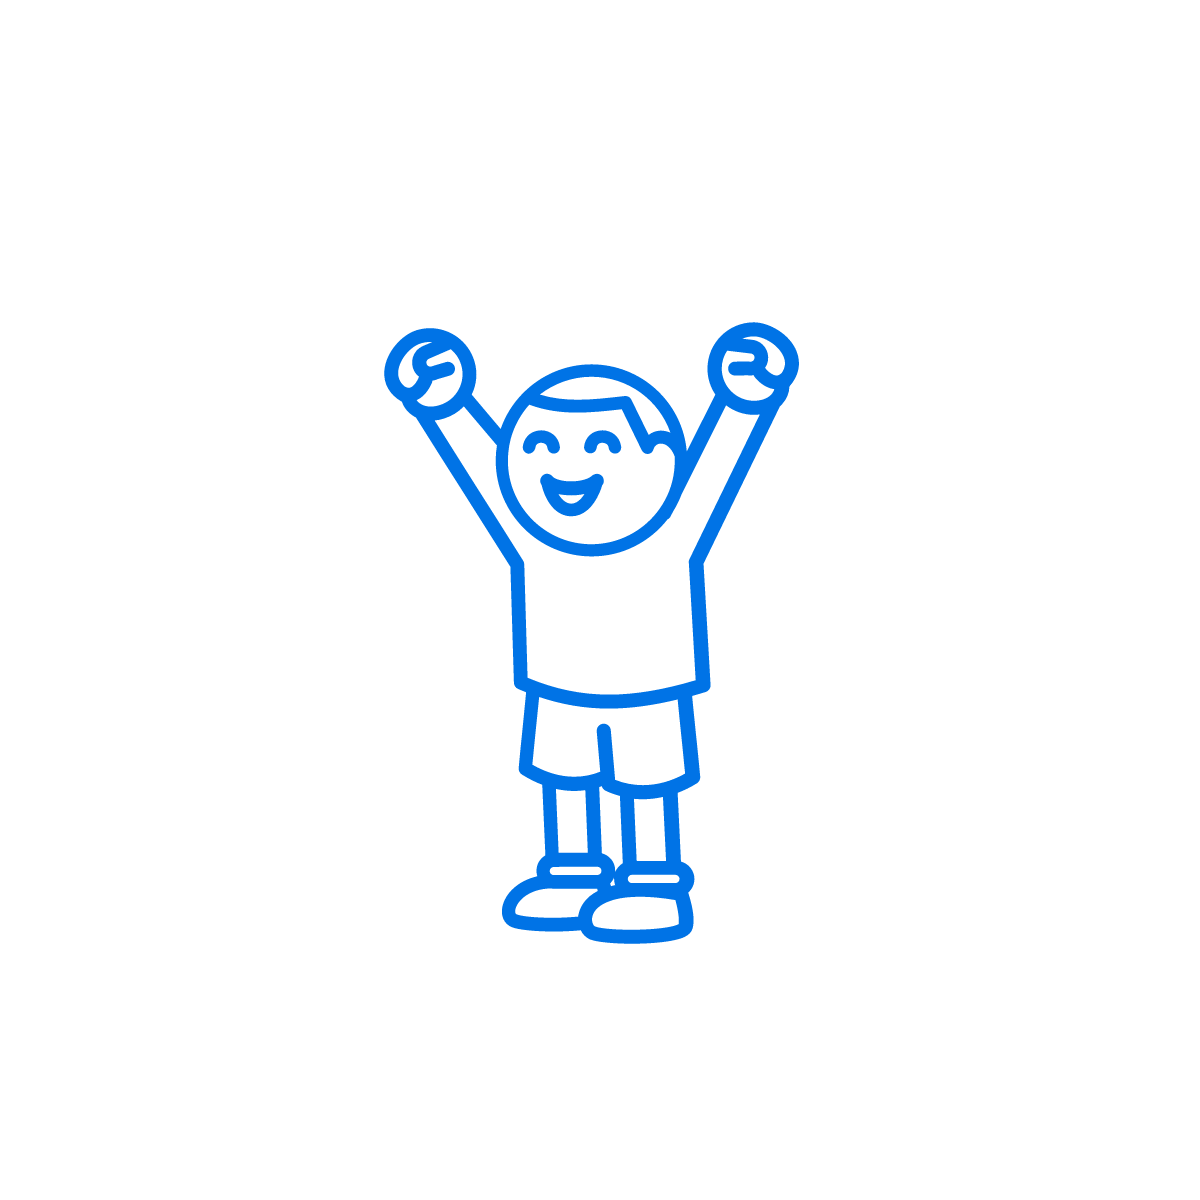 line drawing of a young man celebrating with his arms in the air